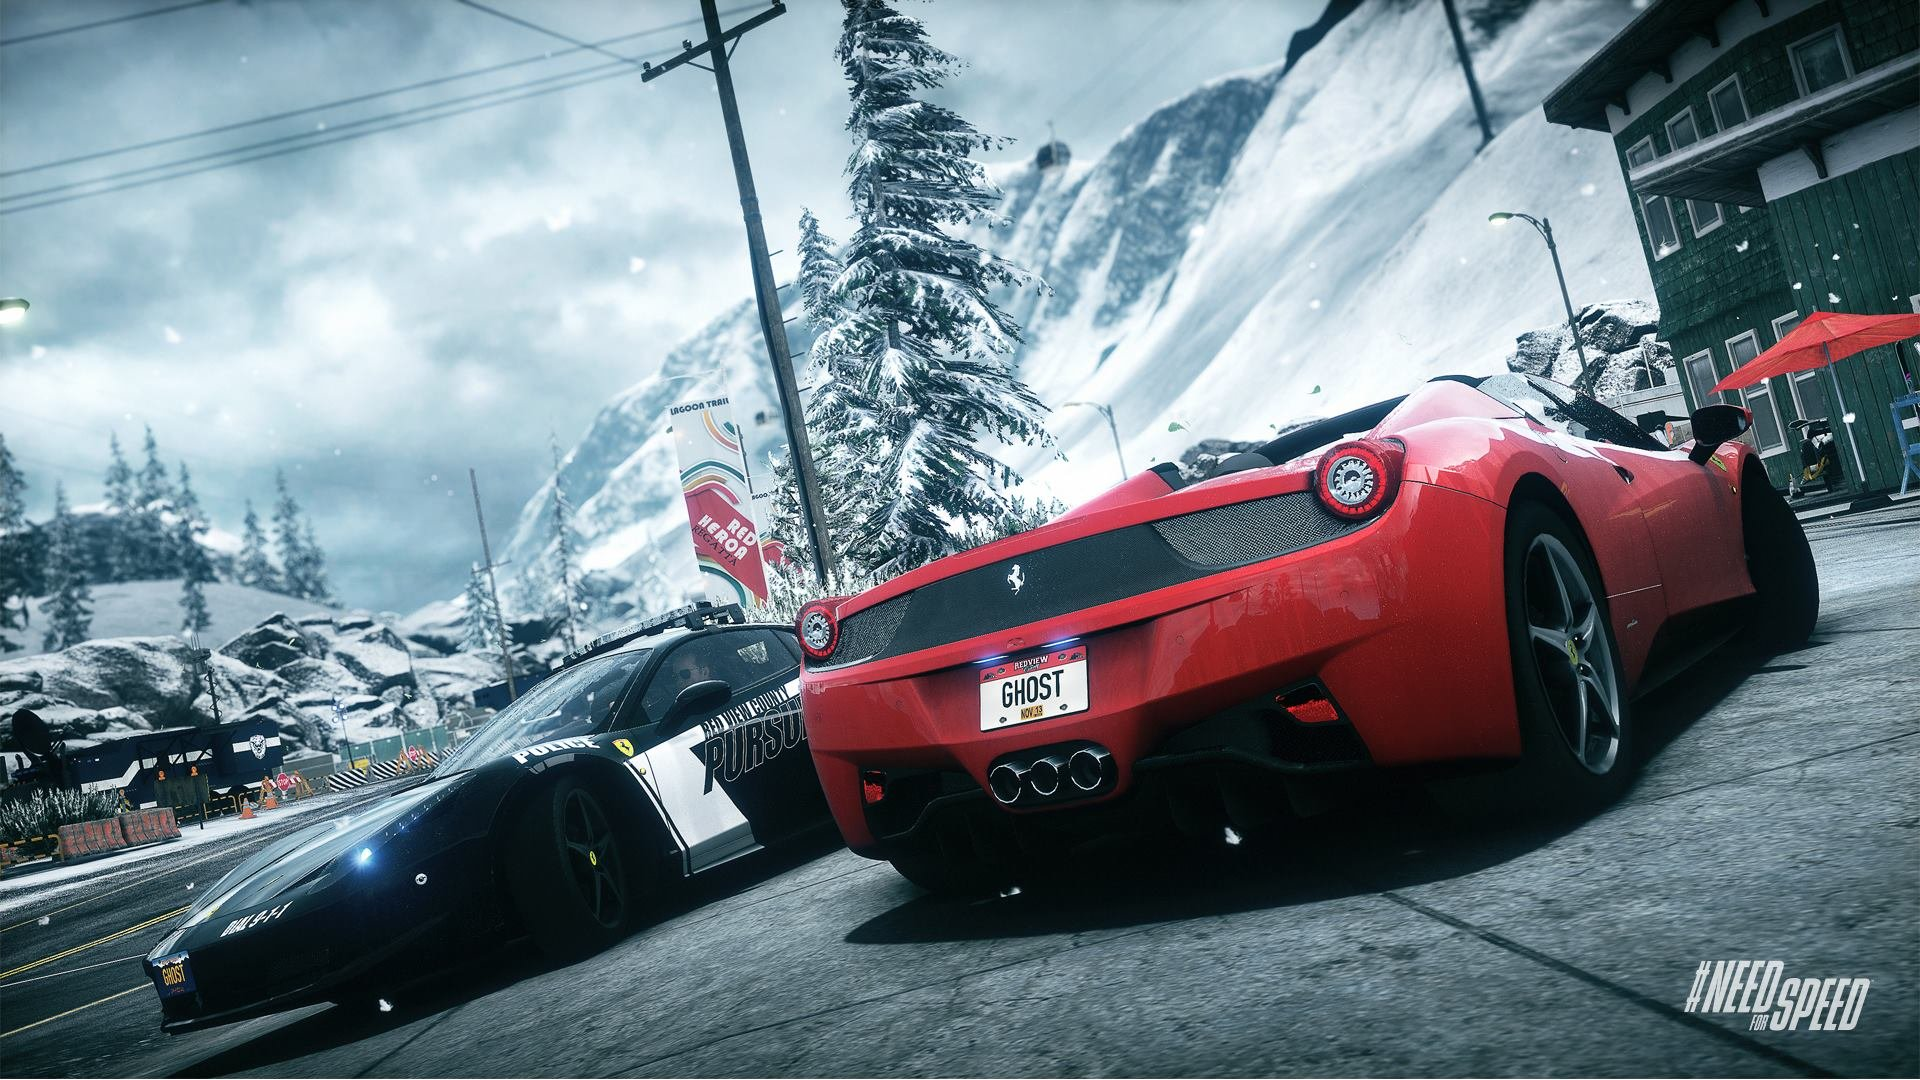 need for speed rivals wallpaper 1920x1080 289958 wallpaperup. Black Bedroom Furniture Sets. Home Design Ideas